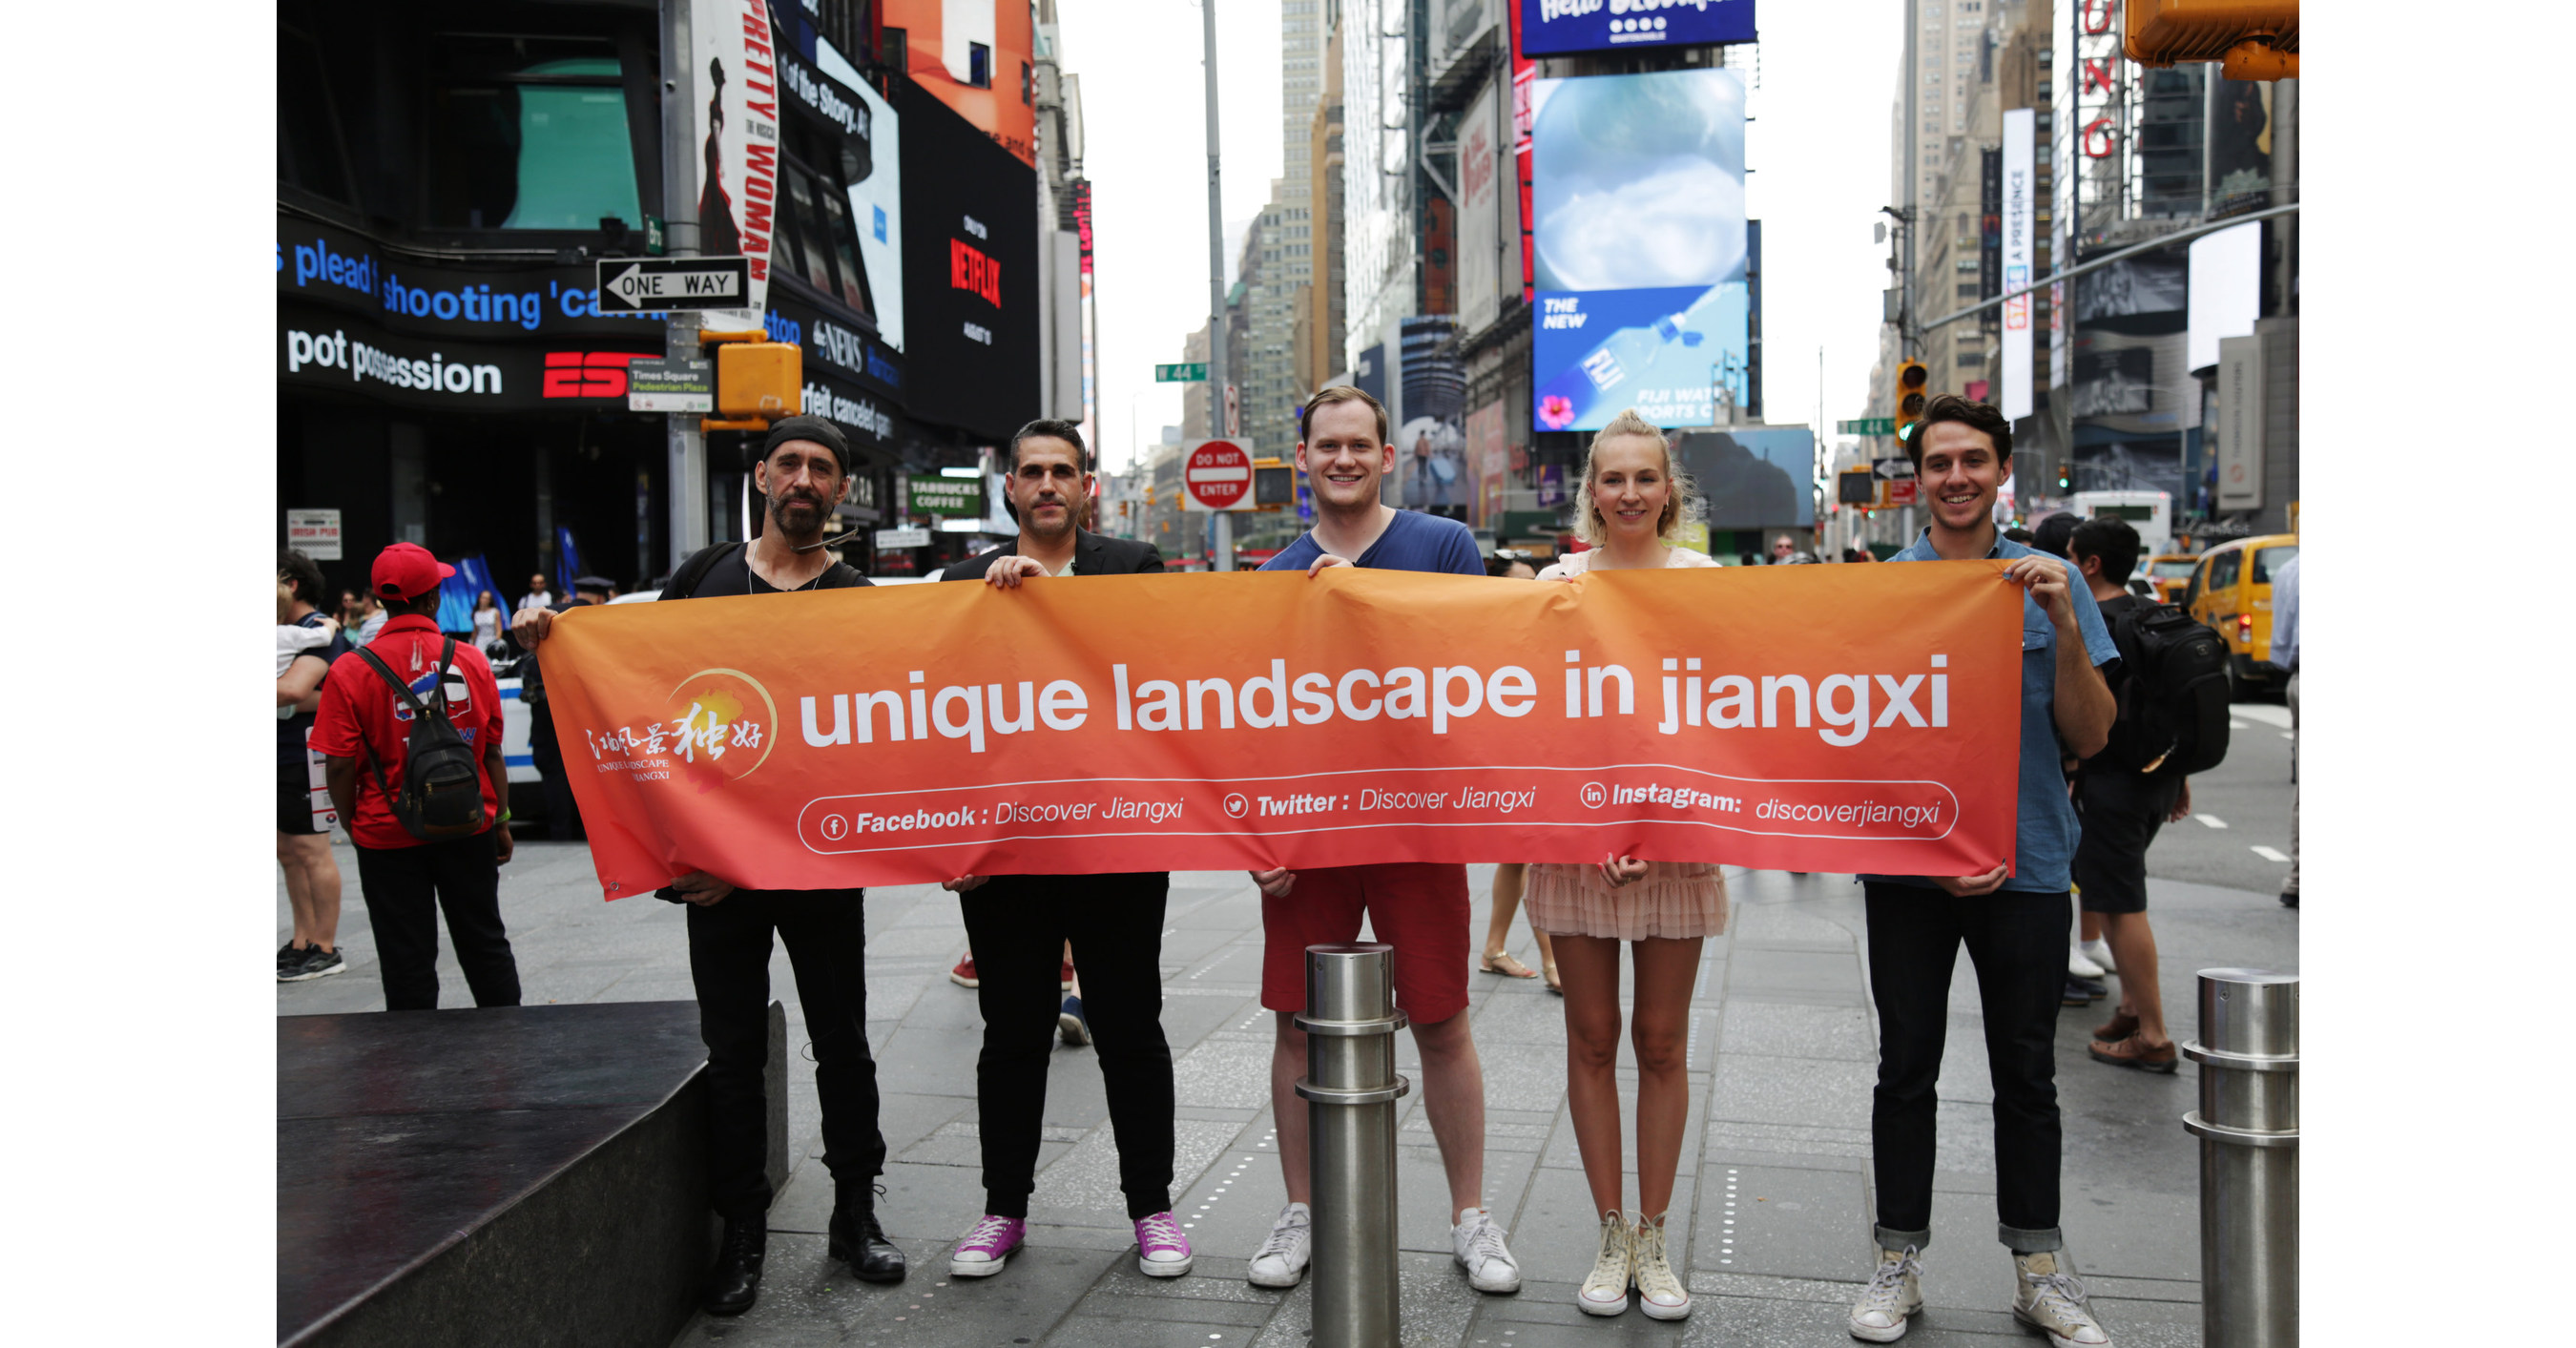 """""""What Do You Know about Jiangxi?"""" Themed Interview Popular at Times Square"""